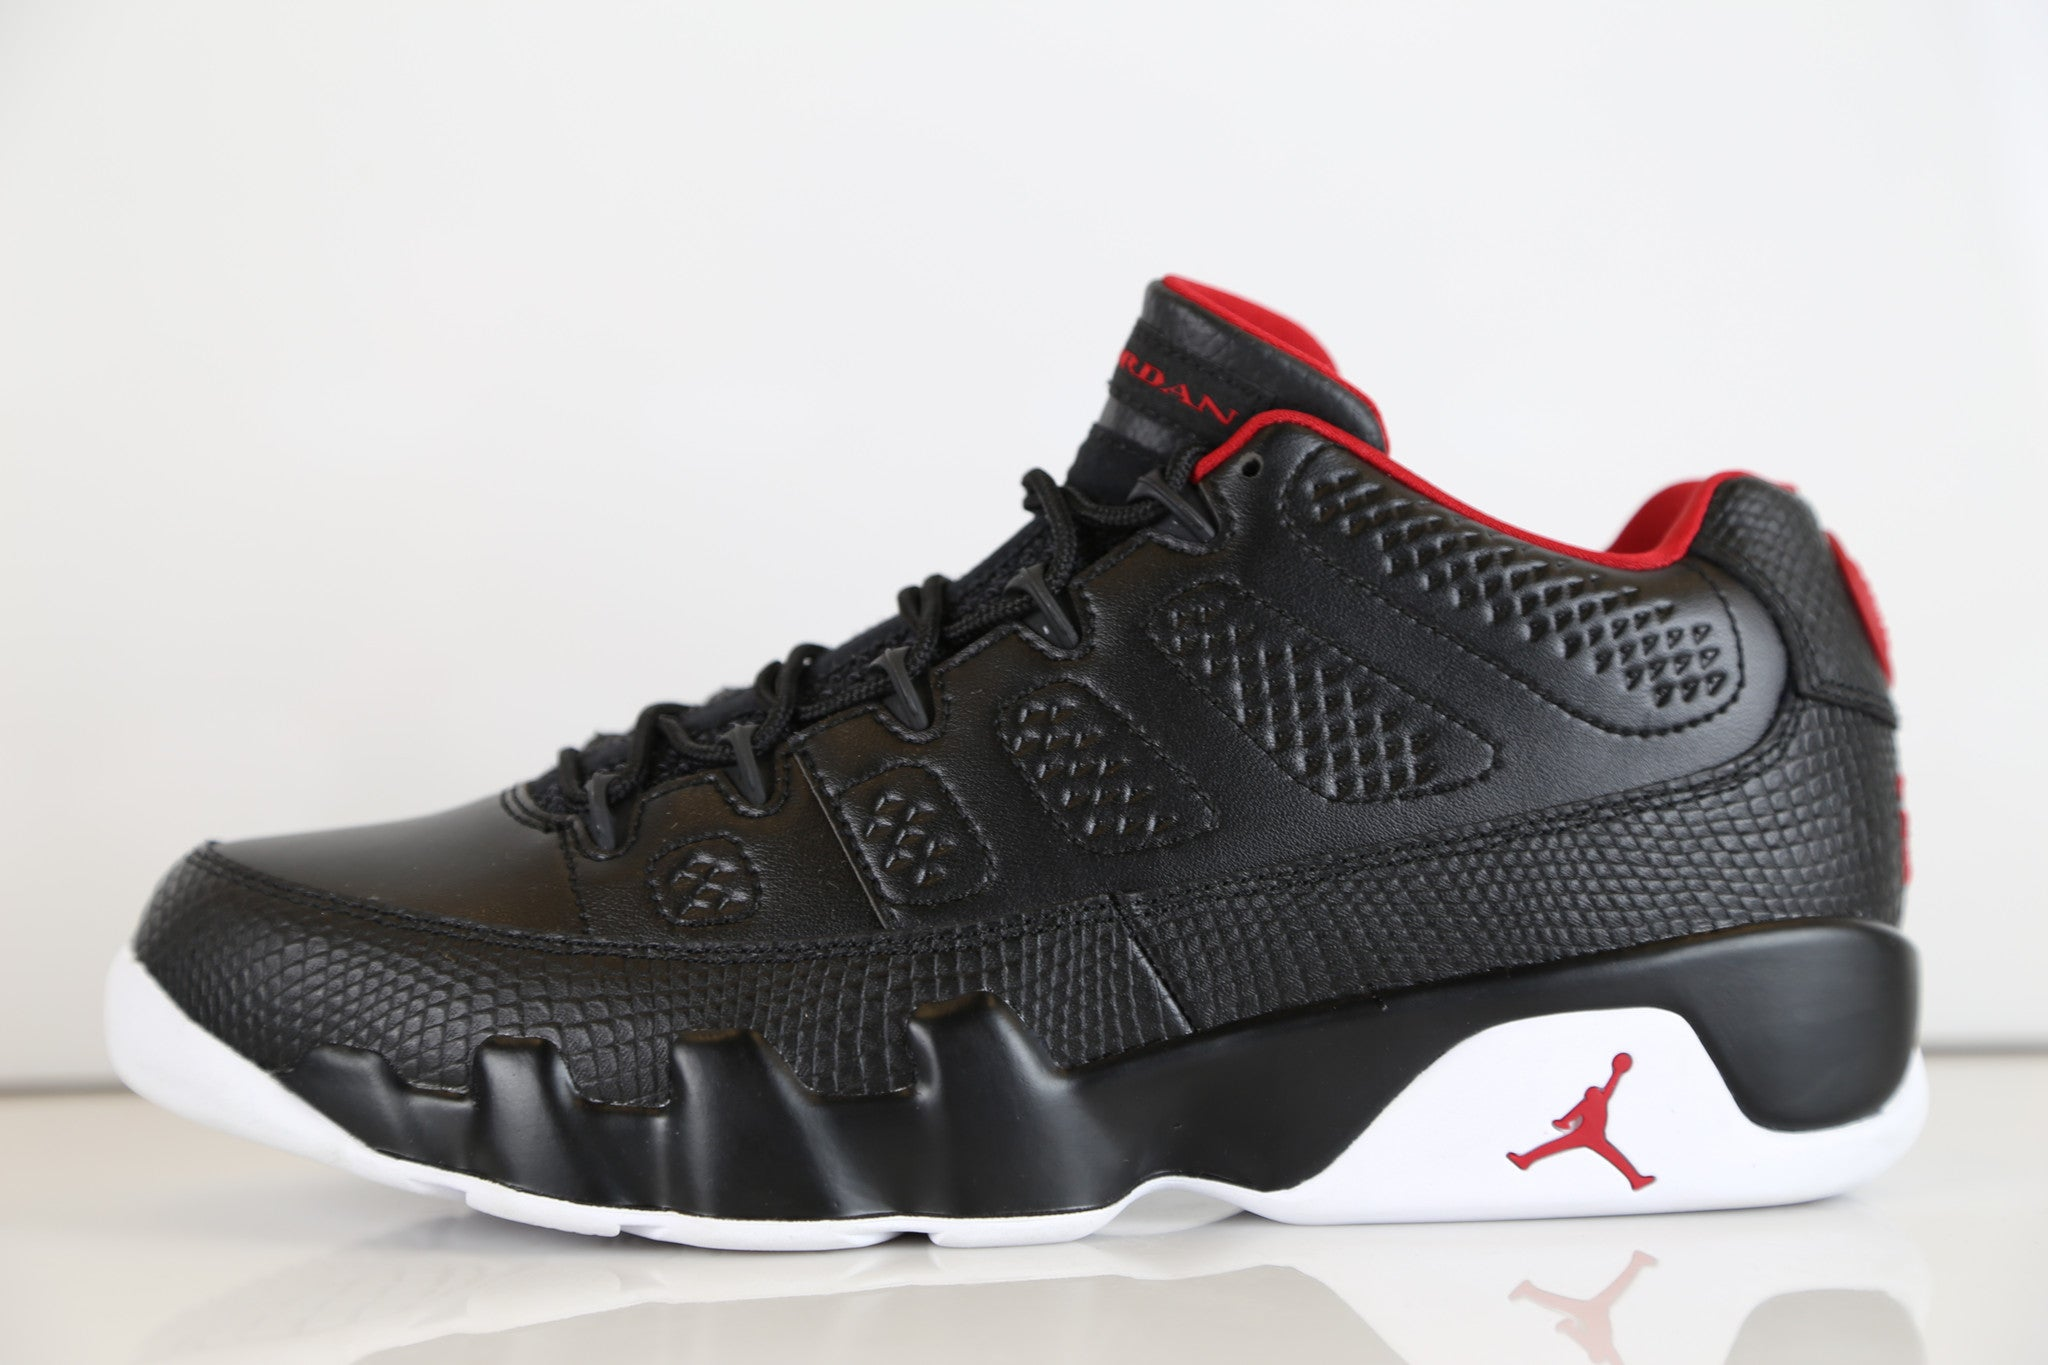 sneakers for cheap d0edd e58bc Nike Air Jordan Retro 9 Low Bred Black Red 832822-001   Zadehkicks